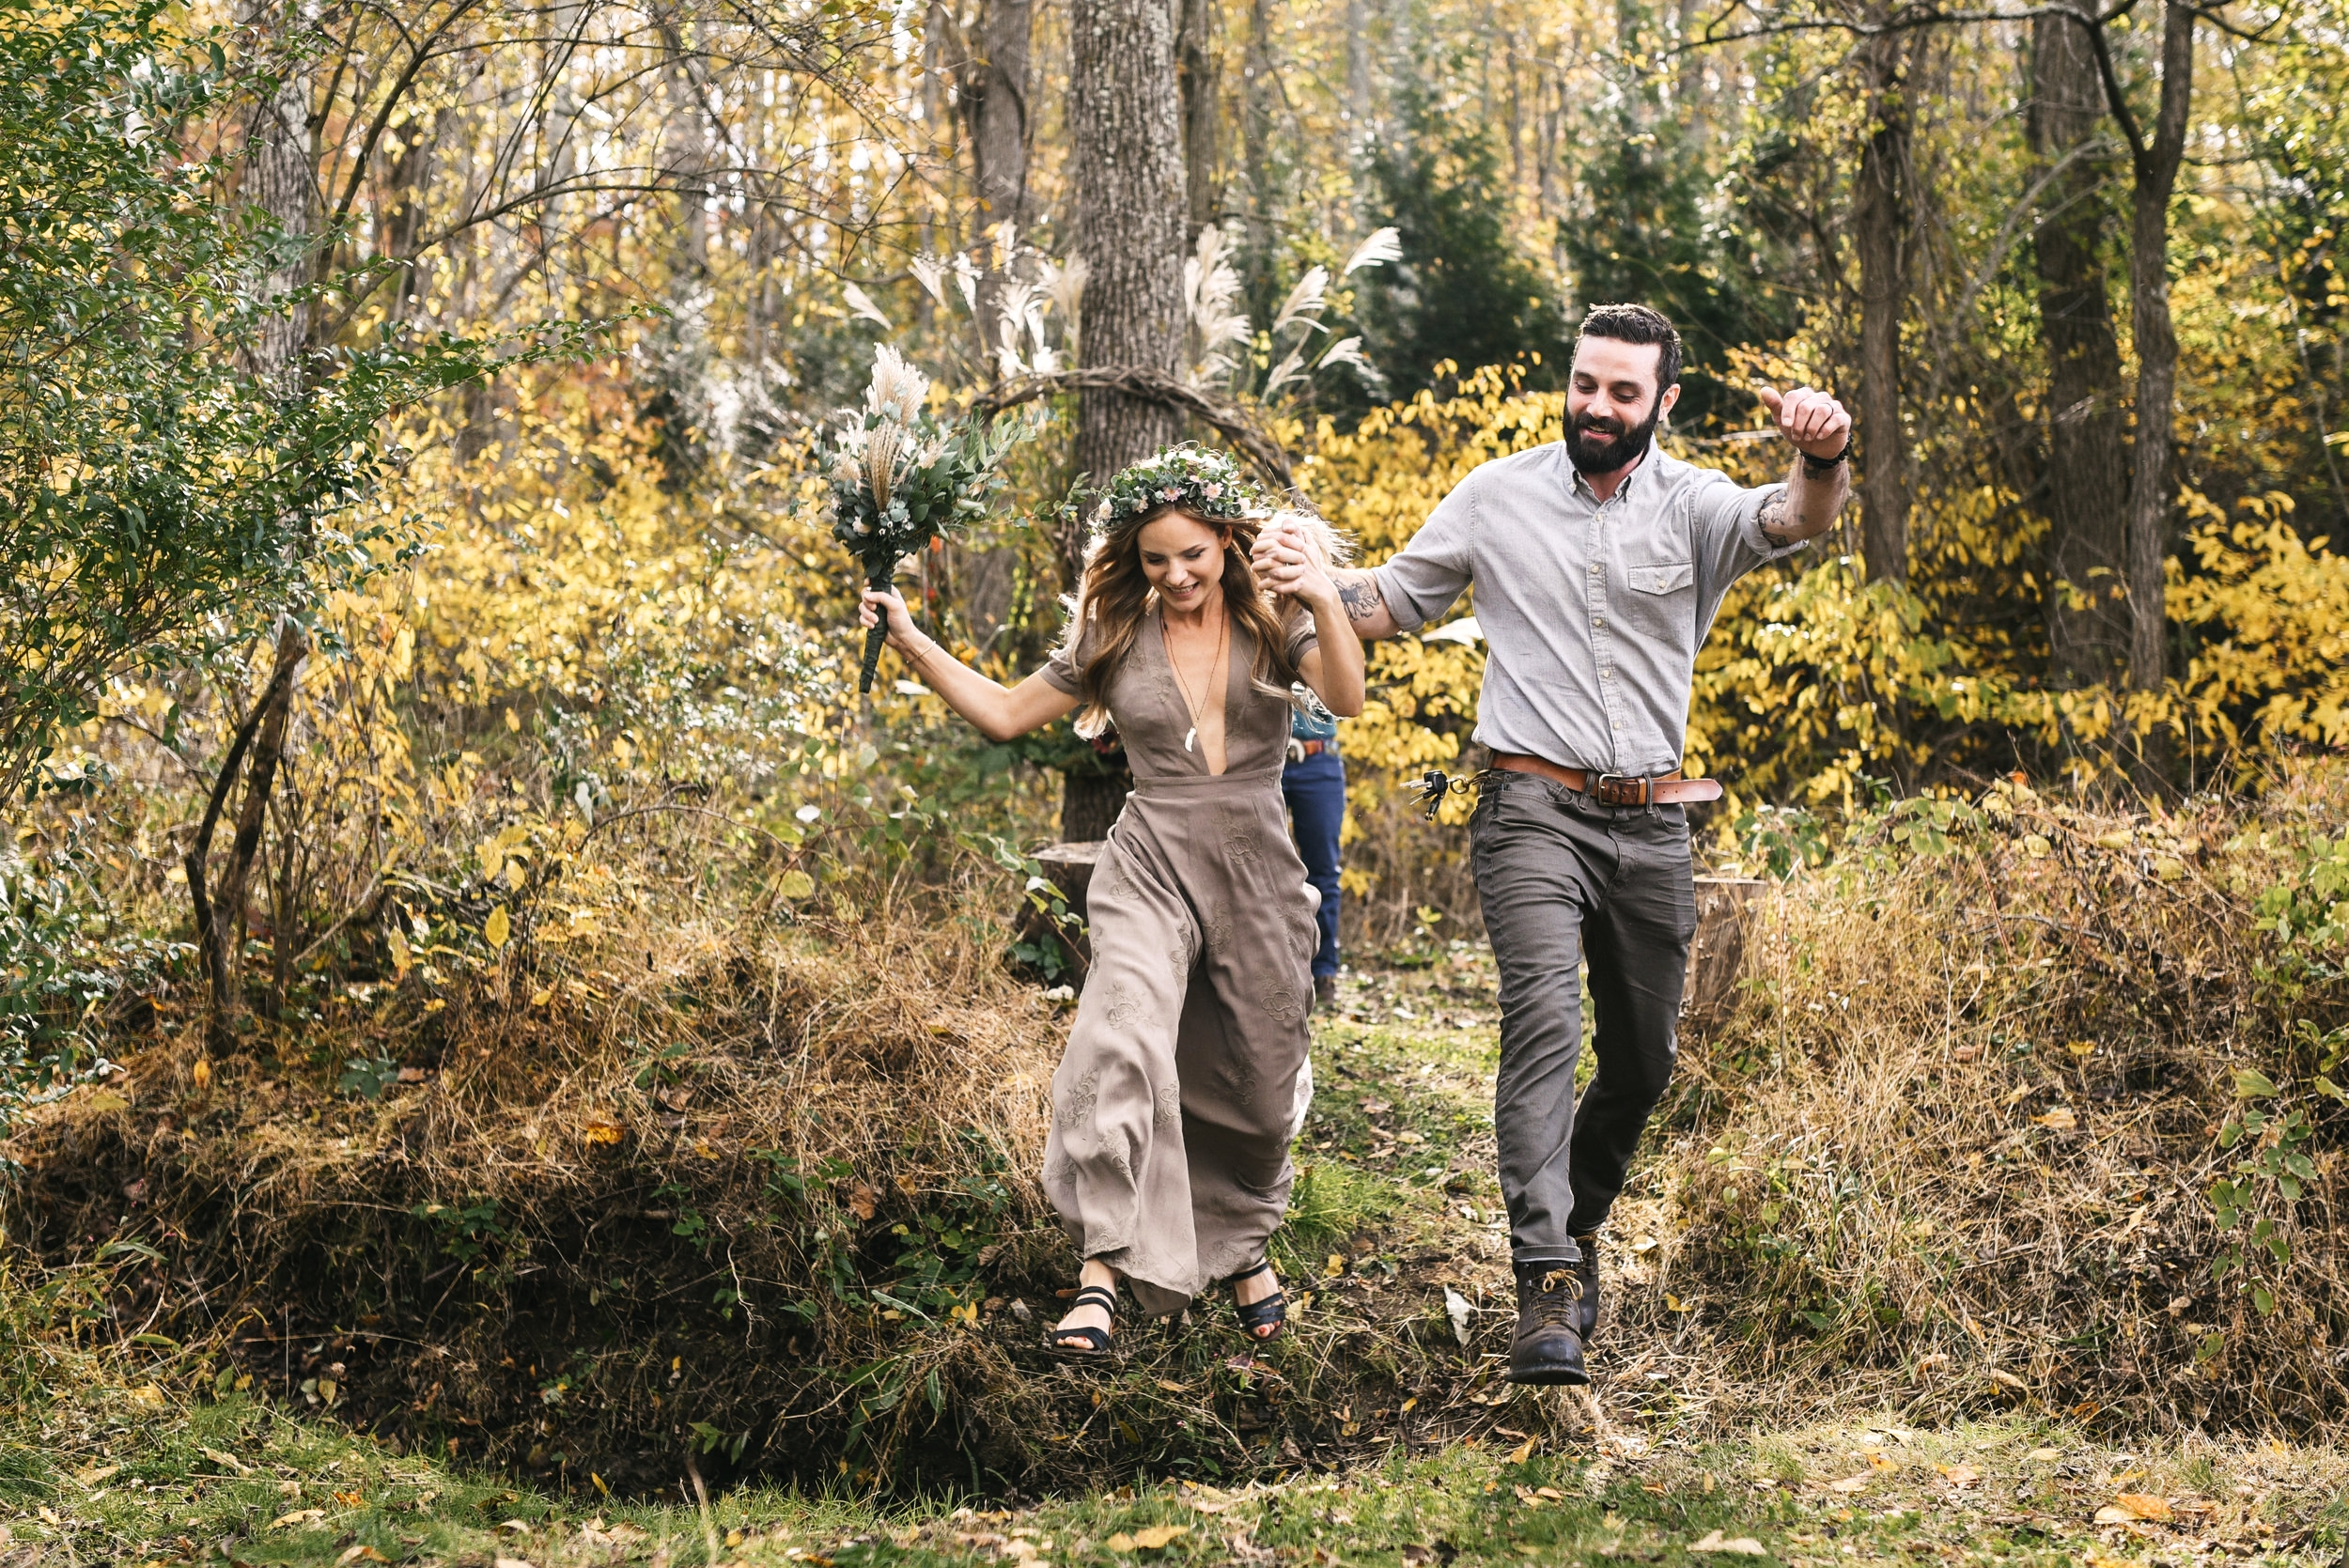 Baltimore, Maryland Wedding Photographer, Backyard Wedding, DIY, Rustic, Casual, Fall Wedding, Woodland, Bride and Groom Jumping Through Field, Just Married, Brightside Boutique Dress